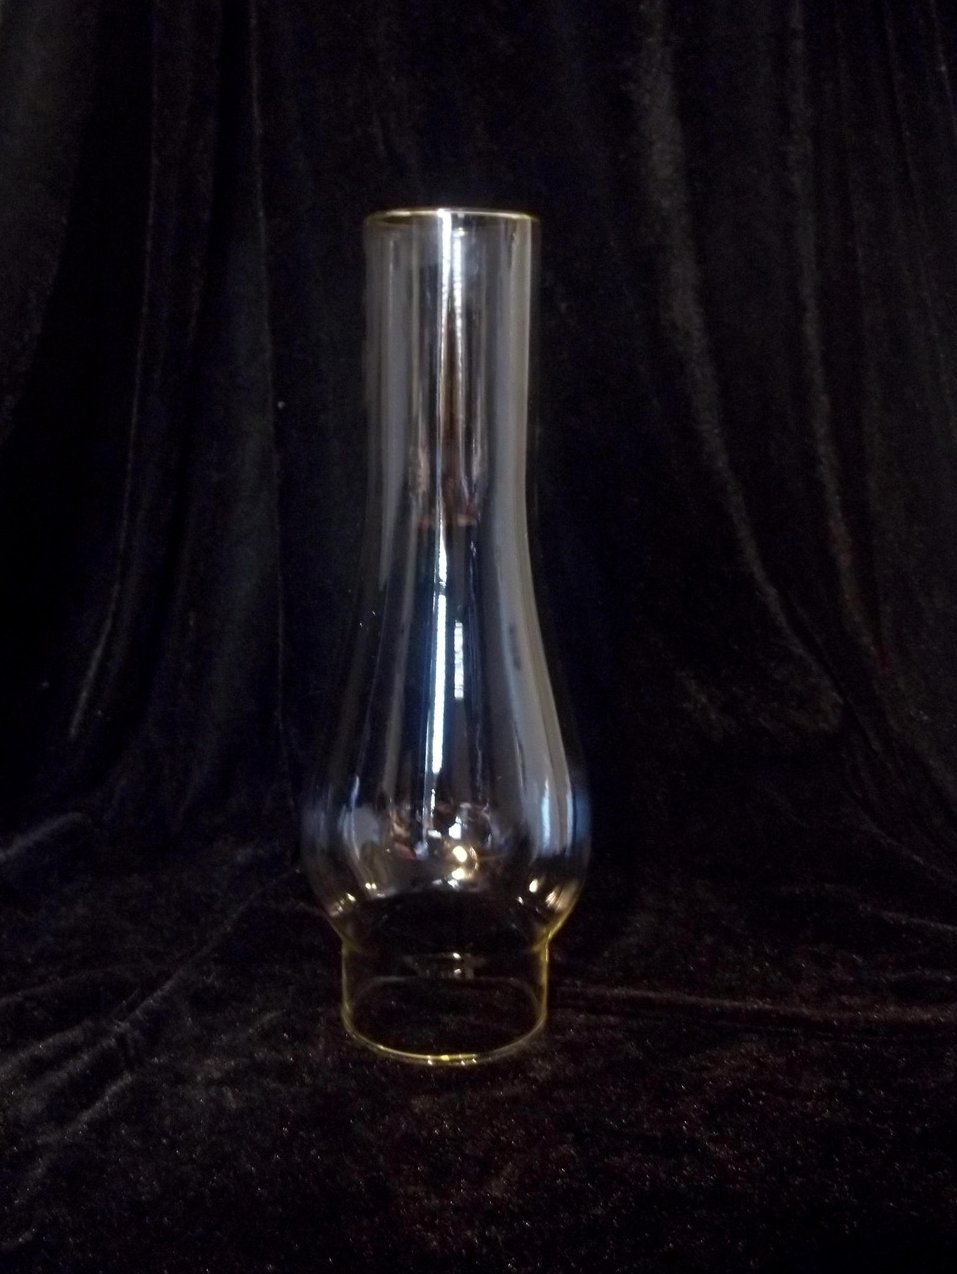 Hurricane Shade Chimney Style 2 5/8 inch fitter x 10 inch x 2